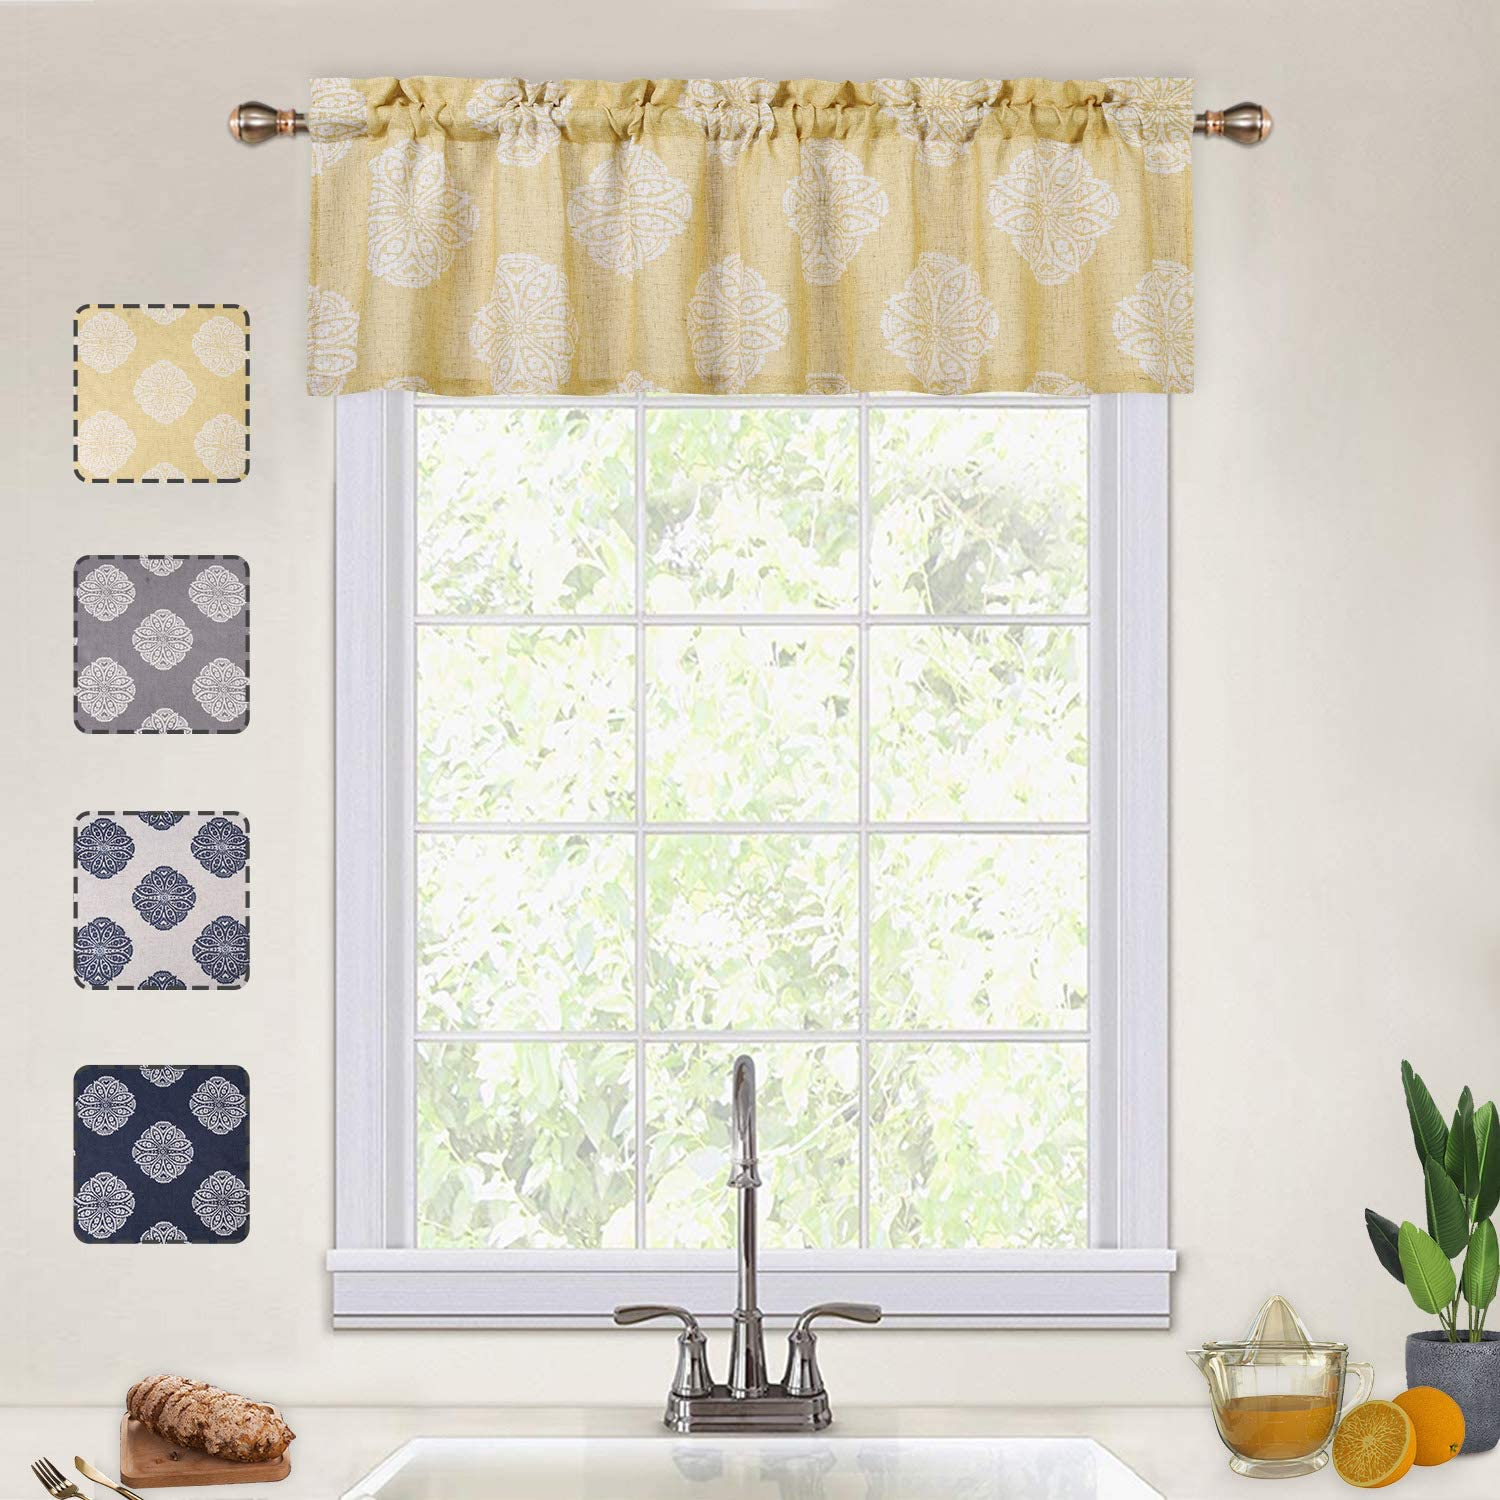 CAROMIO Yellow Valances for Kitchen, Floral Medallion Damask Print Linen Blended Valance Curtains for Bathroom Small Curtains for Cafe Kitchen Windows, Yellow, 54x15 Inch